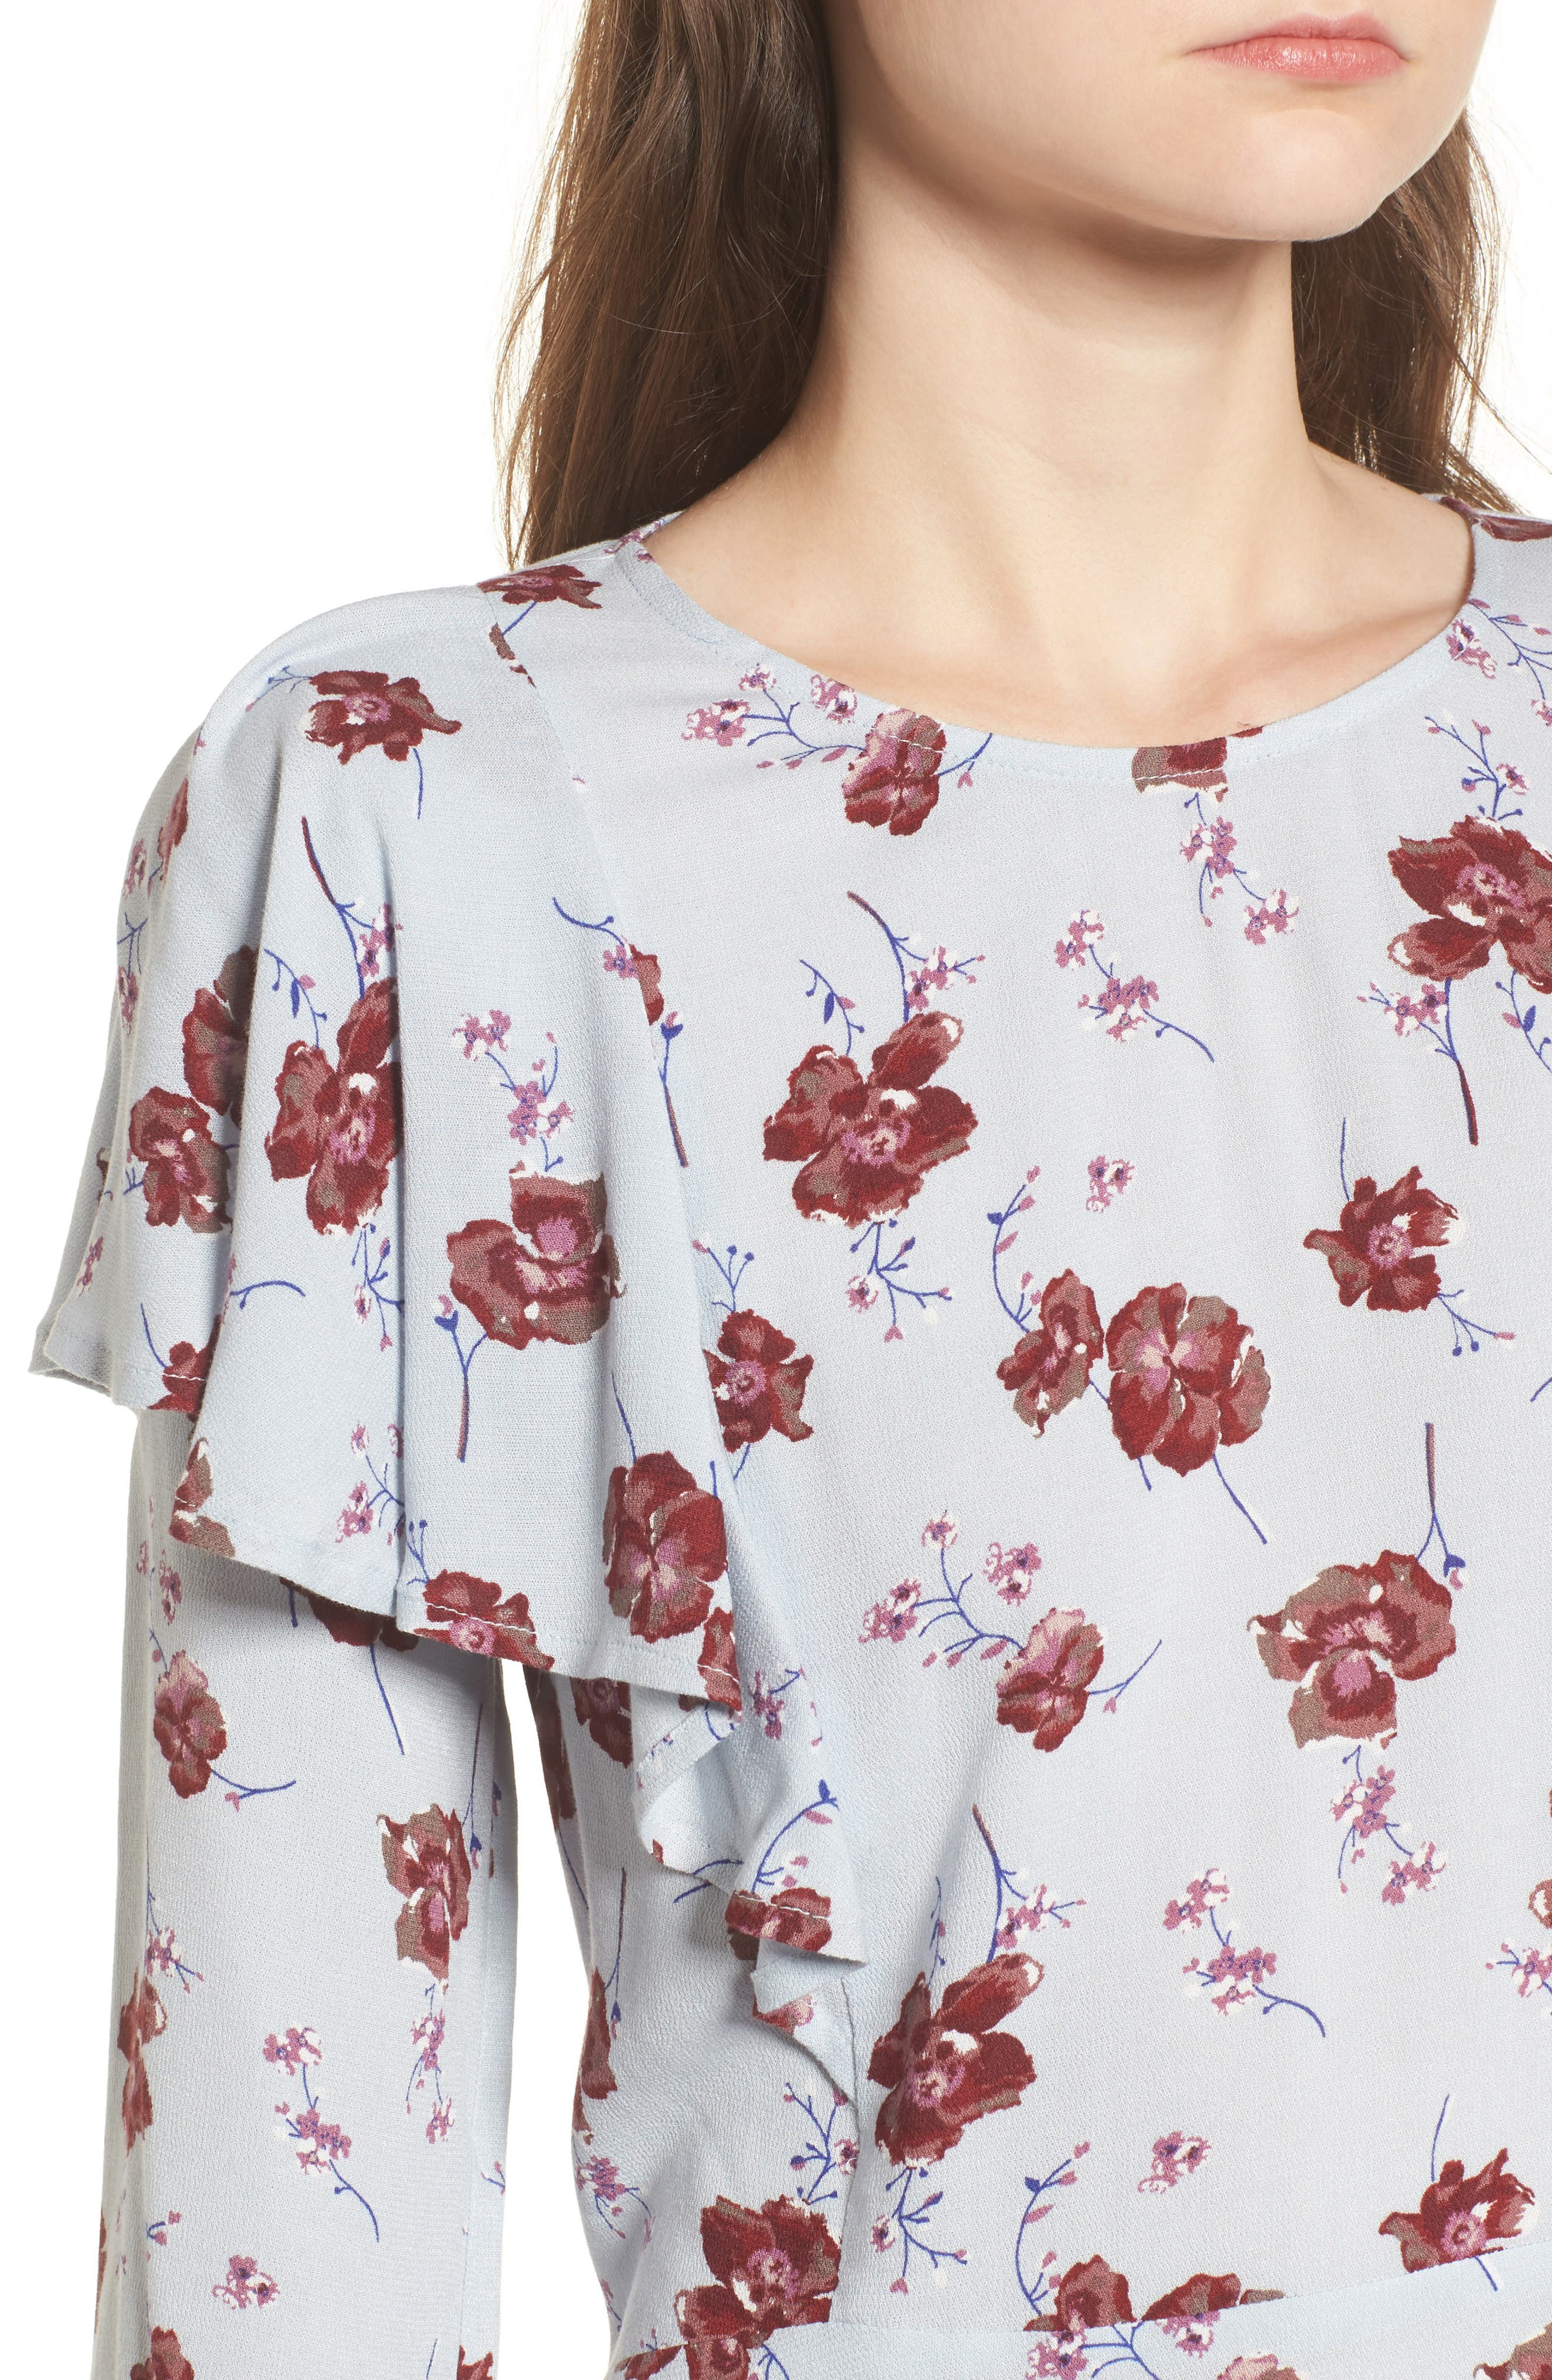 Floral Print Ruffle Blouse,                             Alternate thumbnail 4, color,                             Blue Pearl Meadow Floral